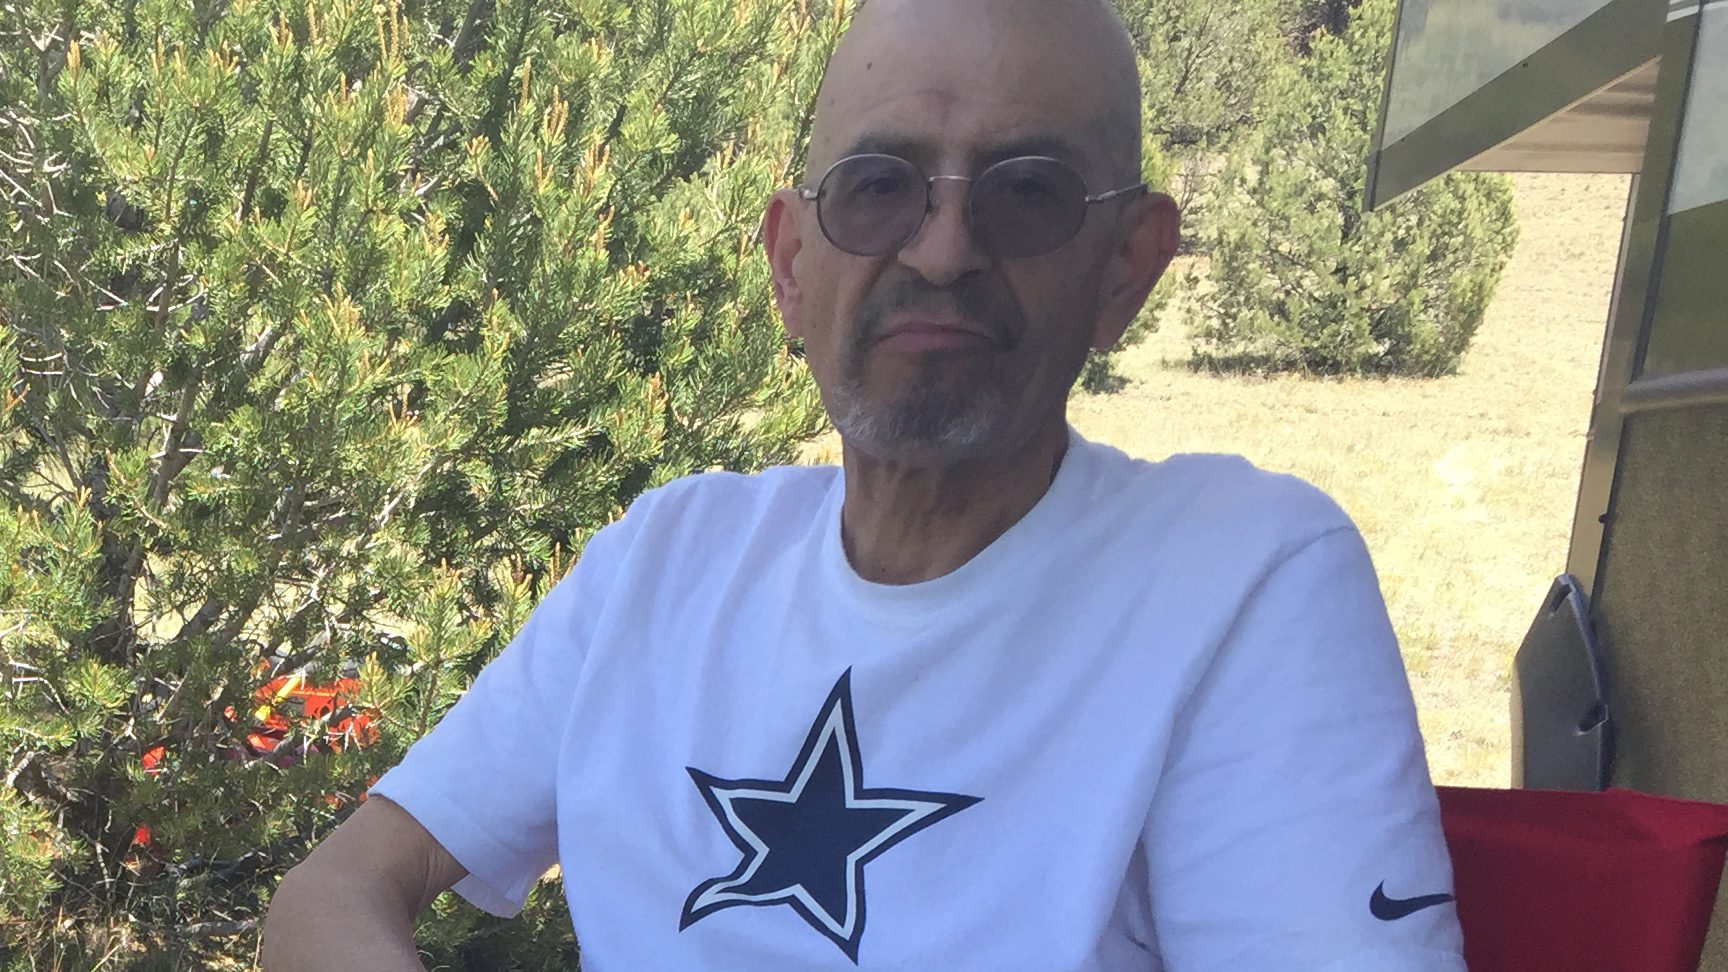 Cancerwise blog post: Pancreatic cancer survivor credits exercise clinical trial for helping him through Whipple procedure